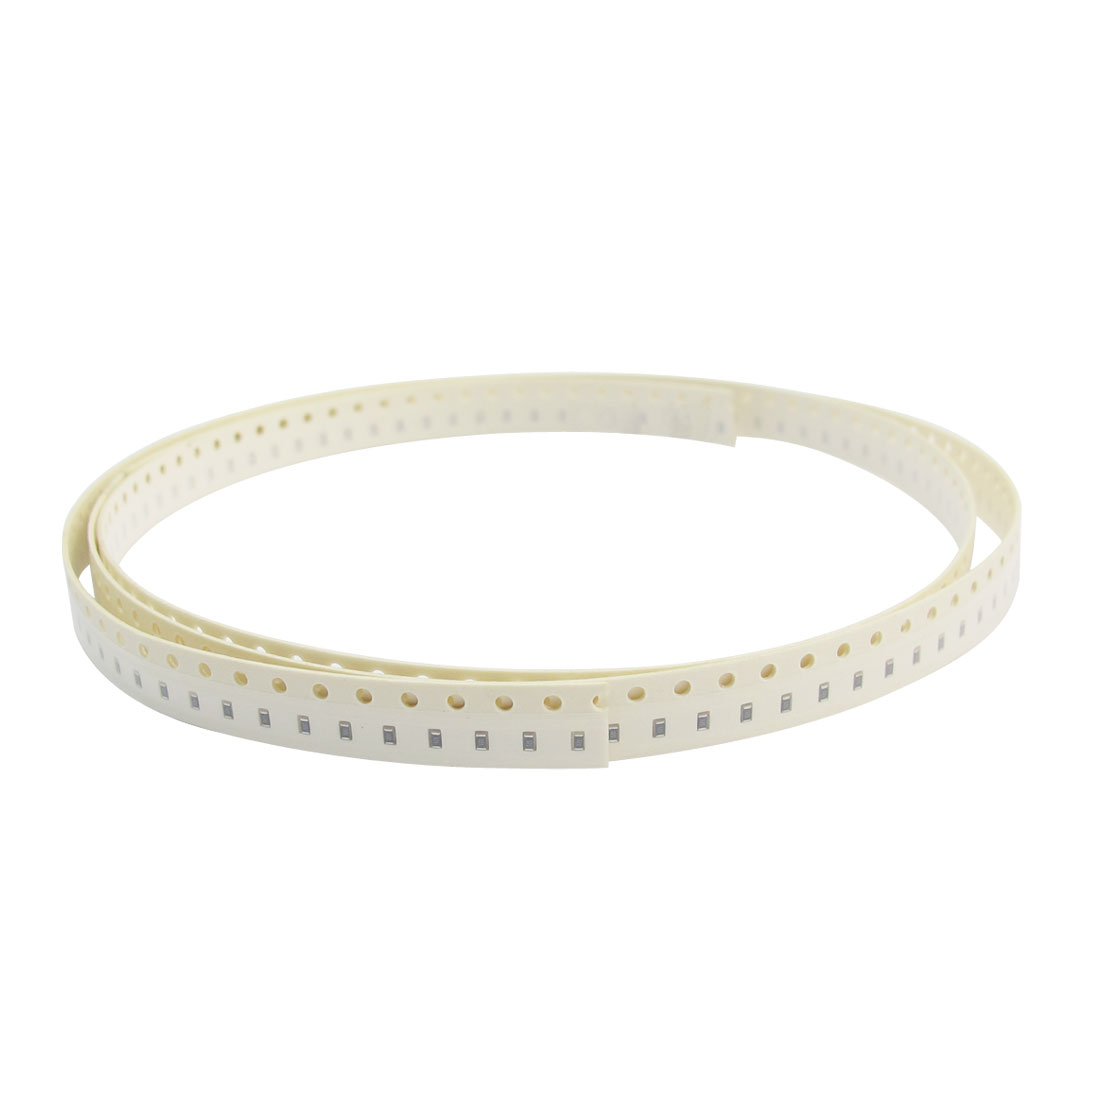 200 Pcs 0603 1608 13K Ohm Resistance 1/16W Watt 5% Tolerance Surface Mounting SMT SMD Chip Fixed Resistors Strip